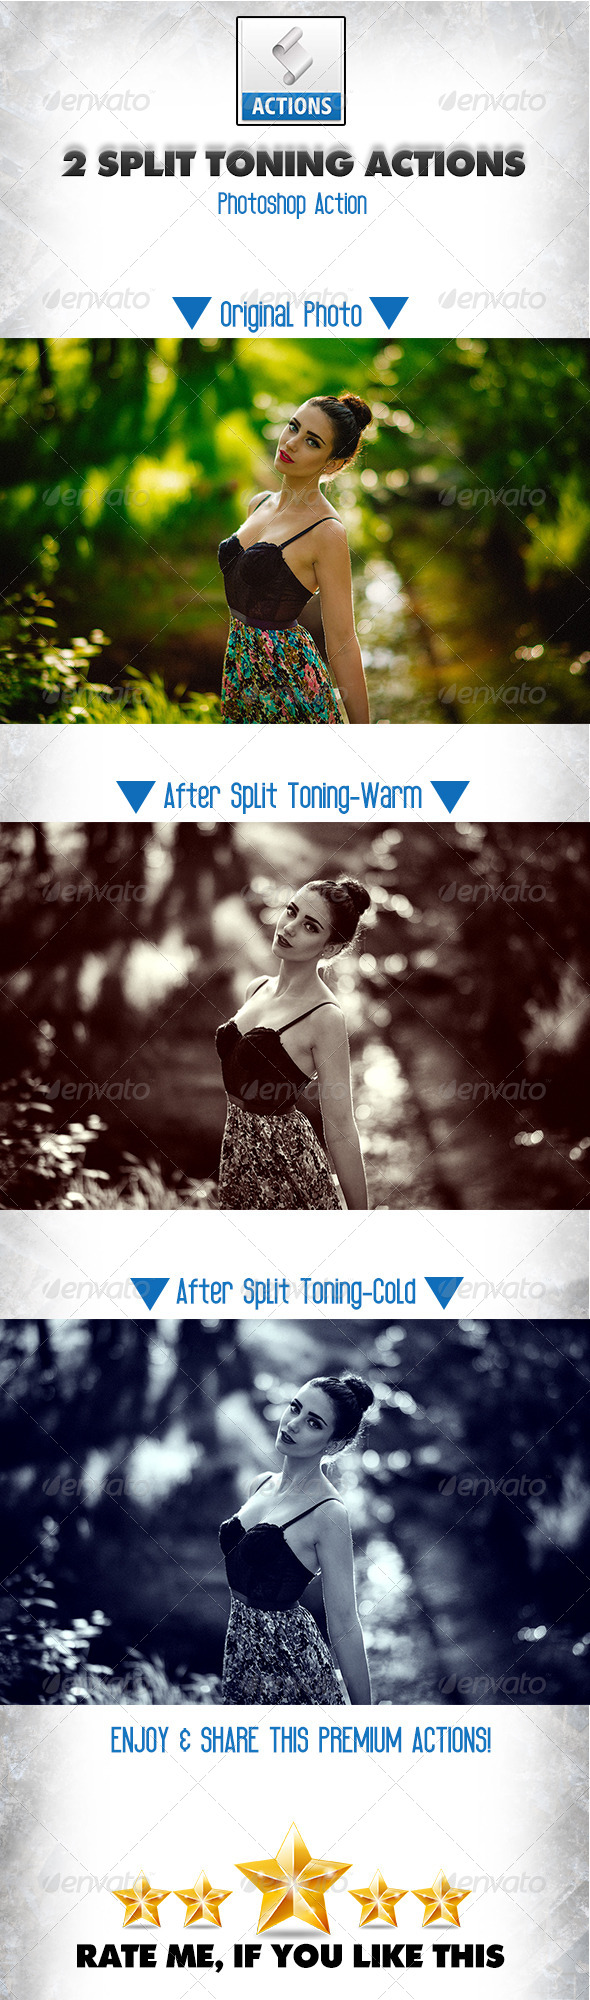 GraphicRiver 2 Split Toning Actions 8645335